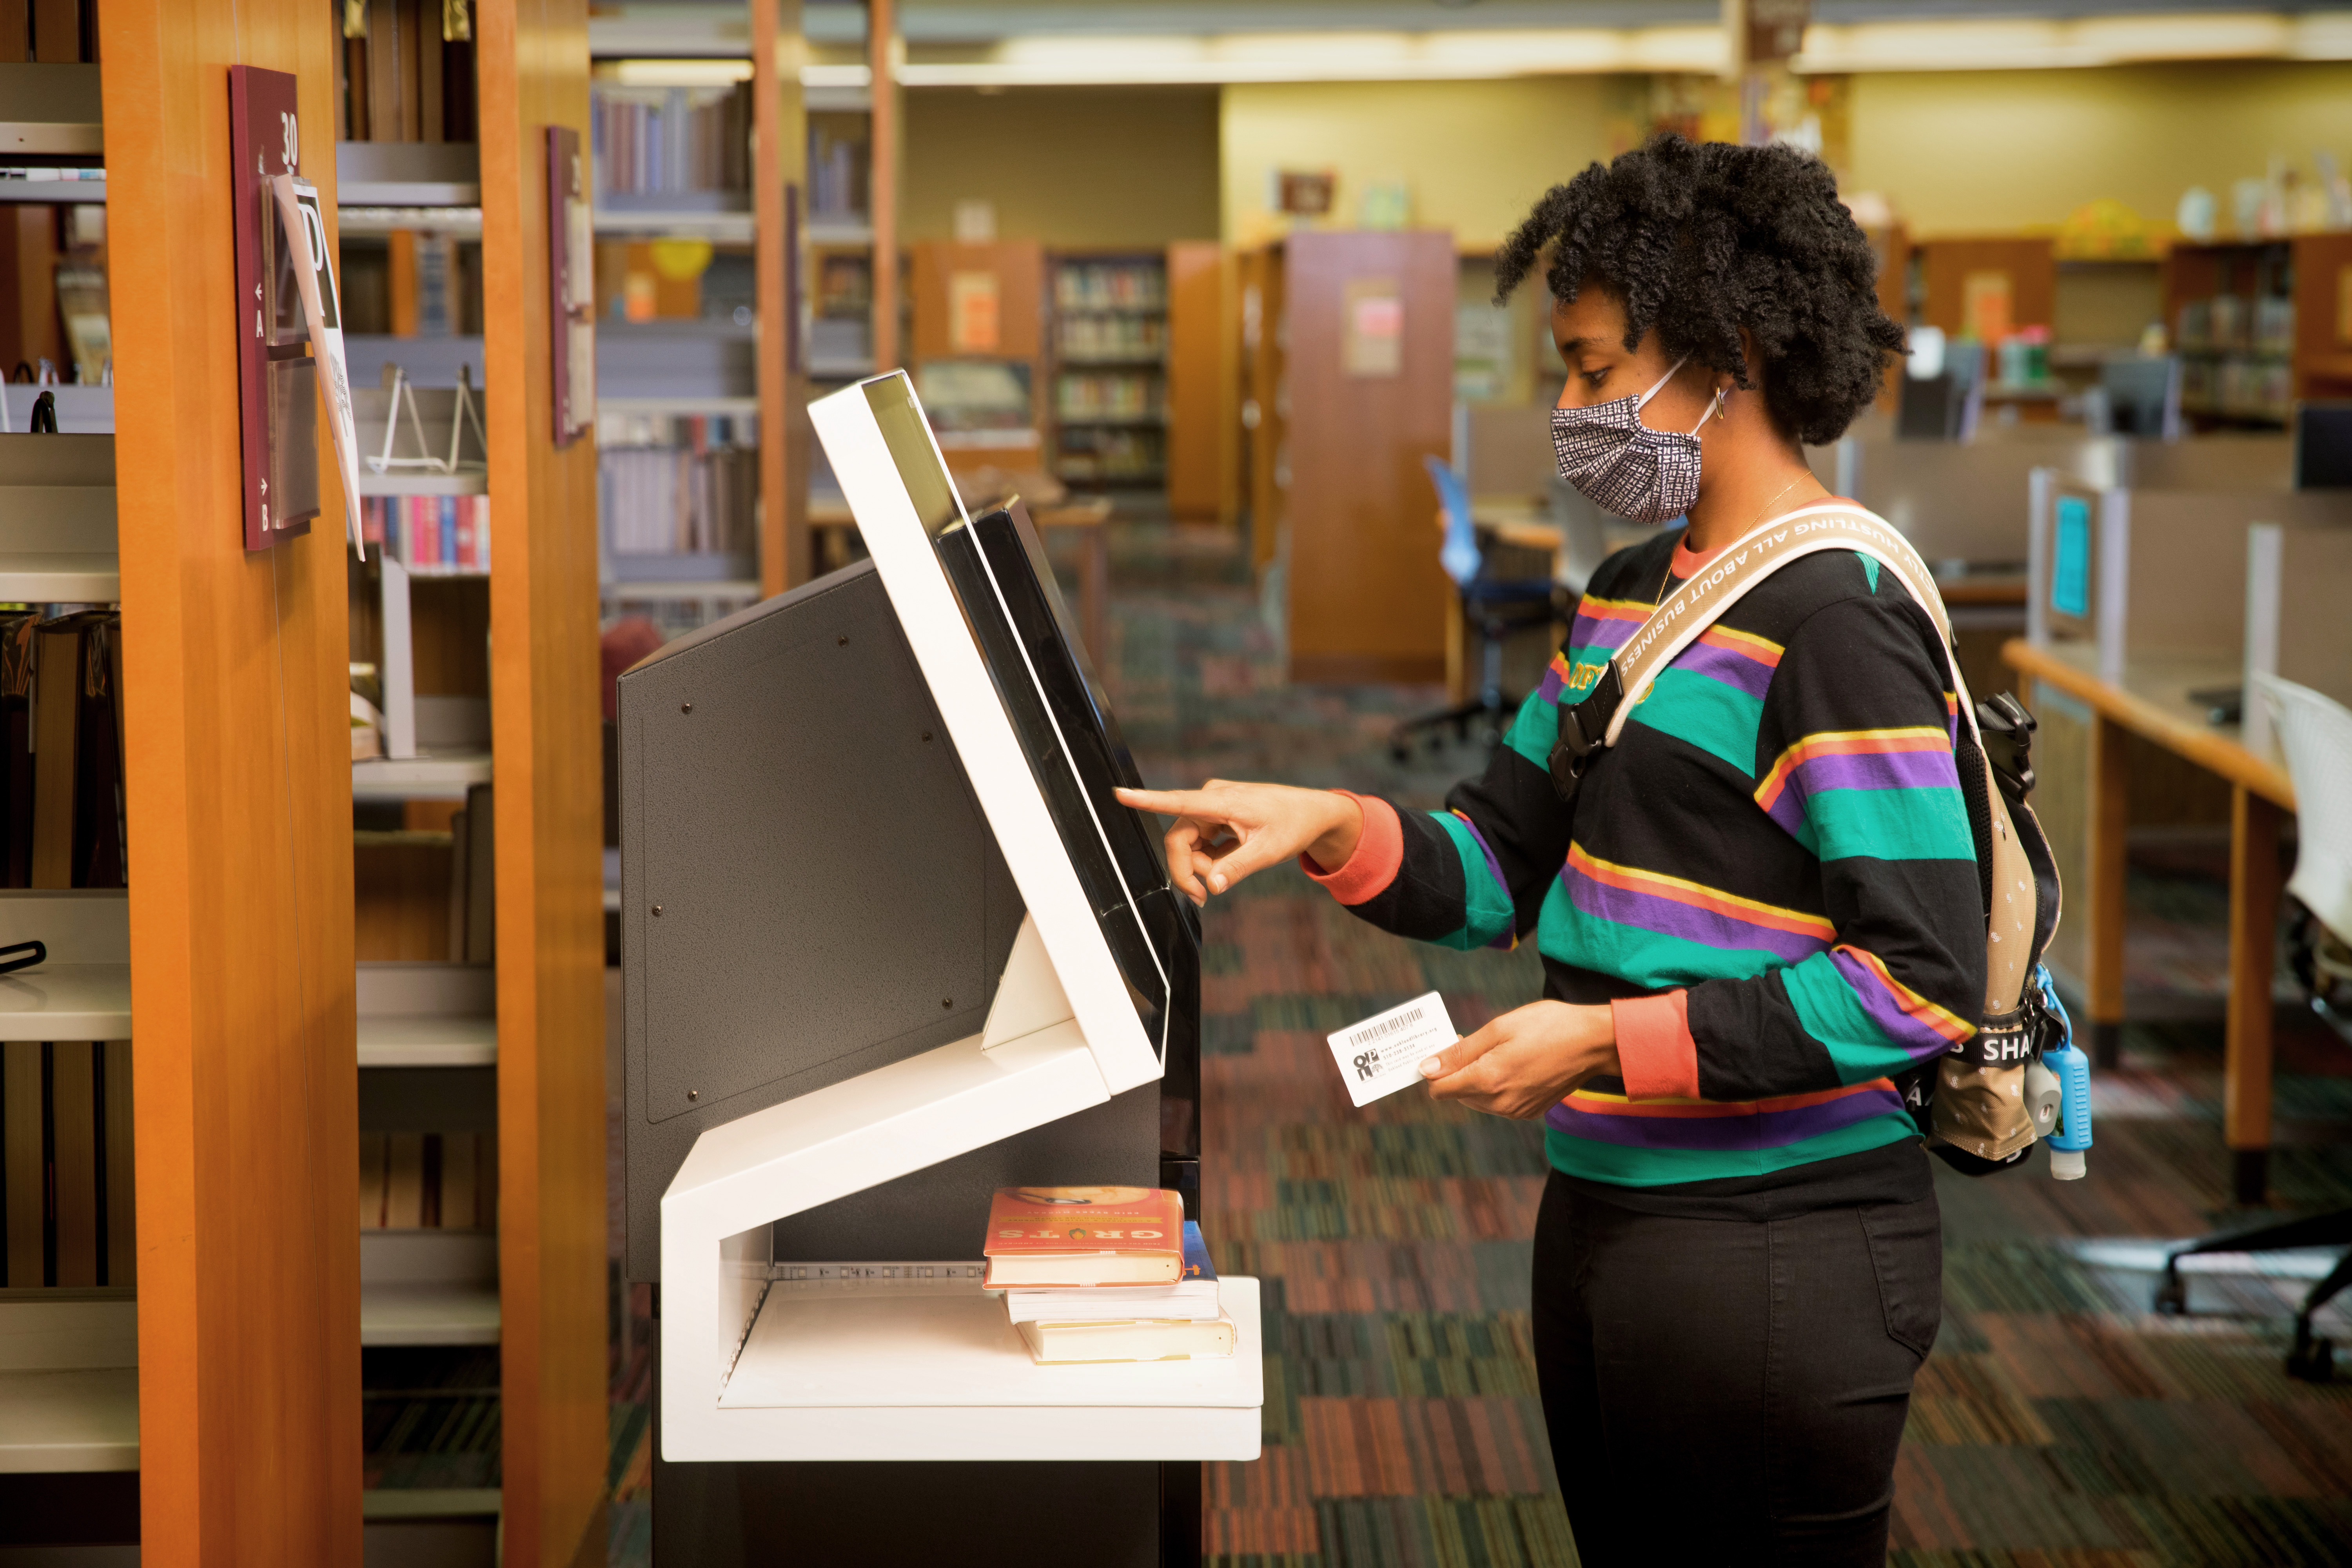 A woman in a colored striped shirt uses a self-check machine.